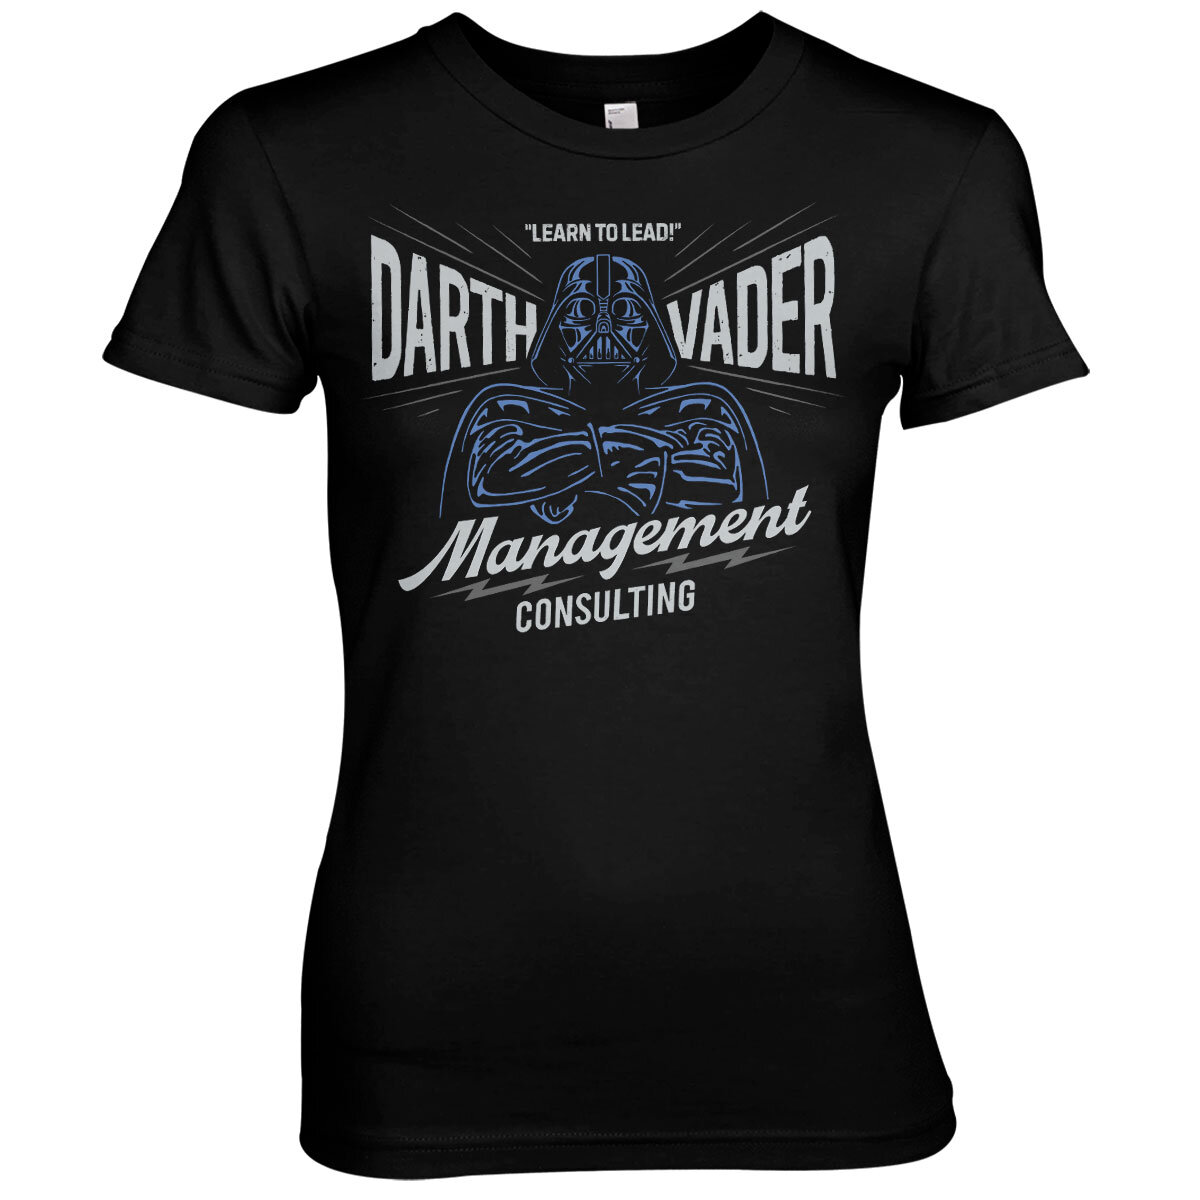 Darth Vader Management Consulting Girly Tee